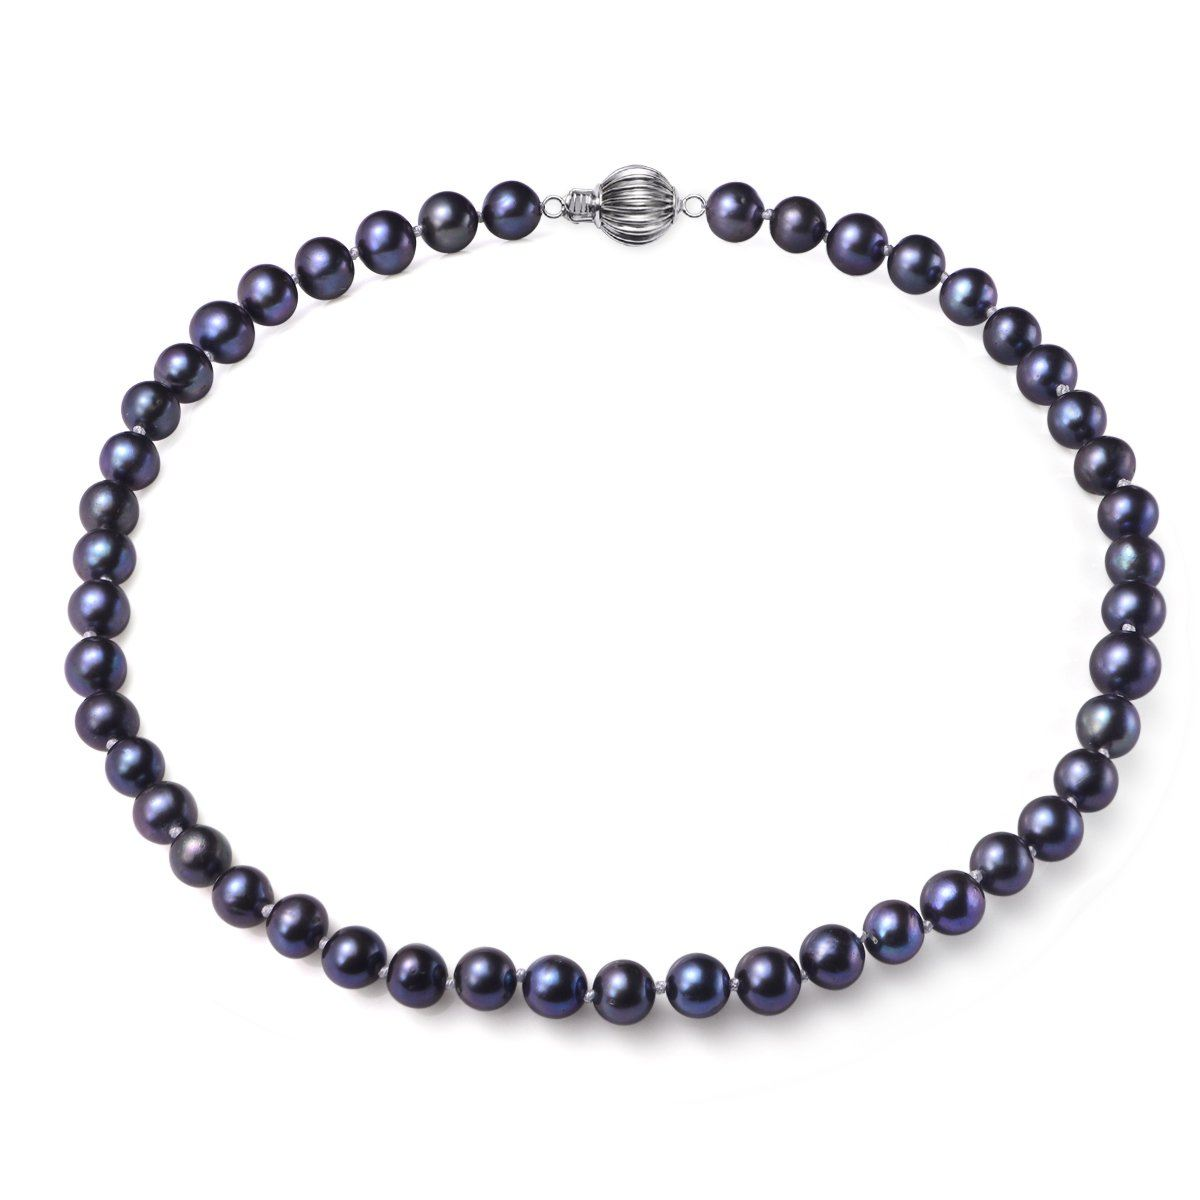 black 8-9mm, aa+, cultured freshwater pearl strand necklace with 925 sterling silver fluted ball